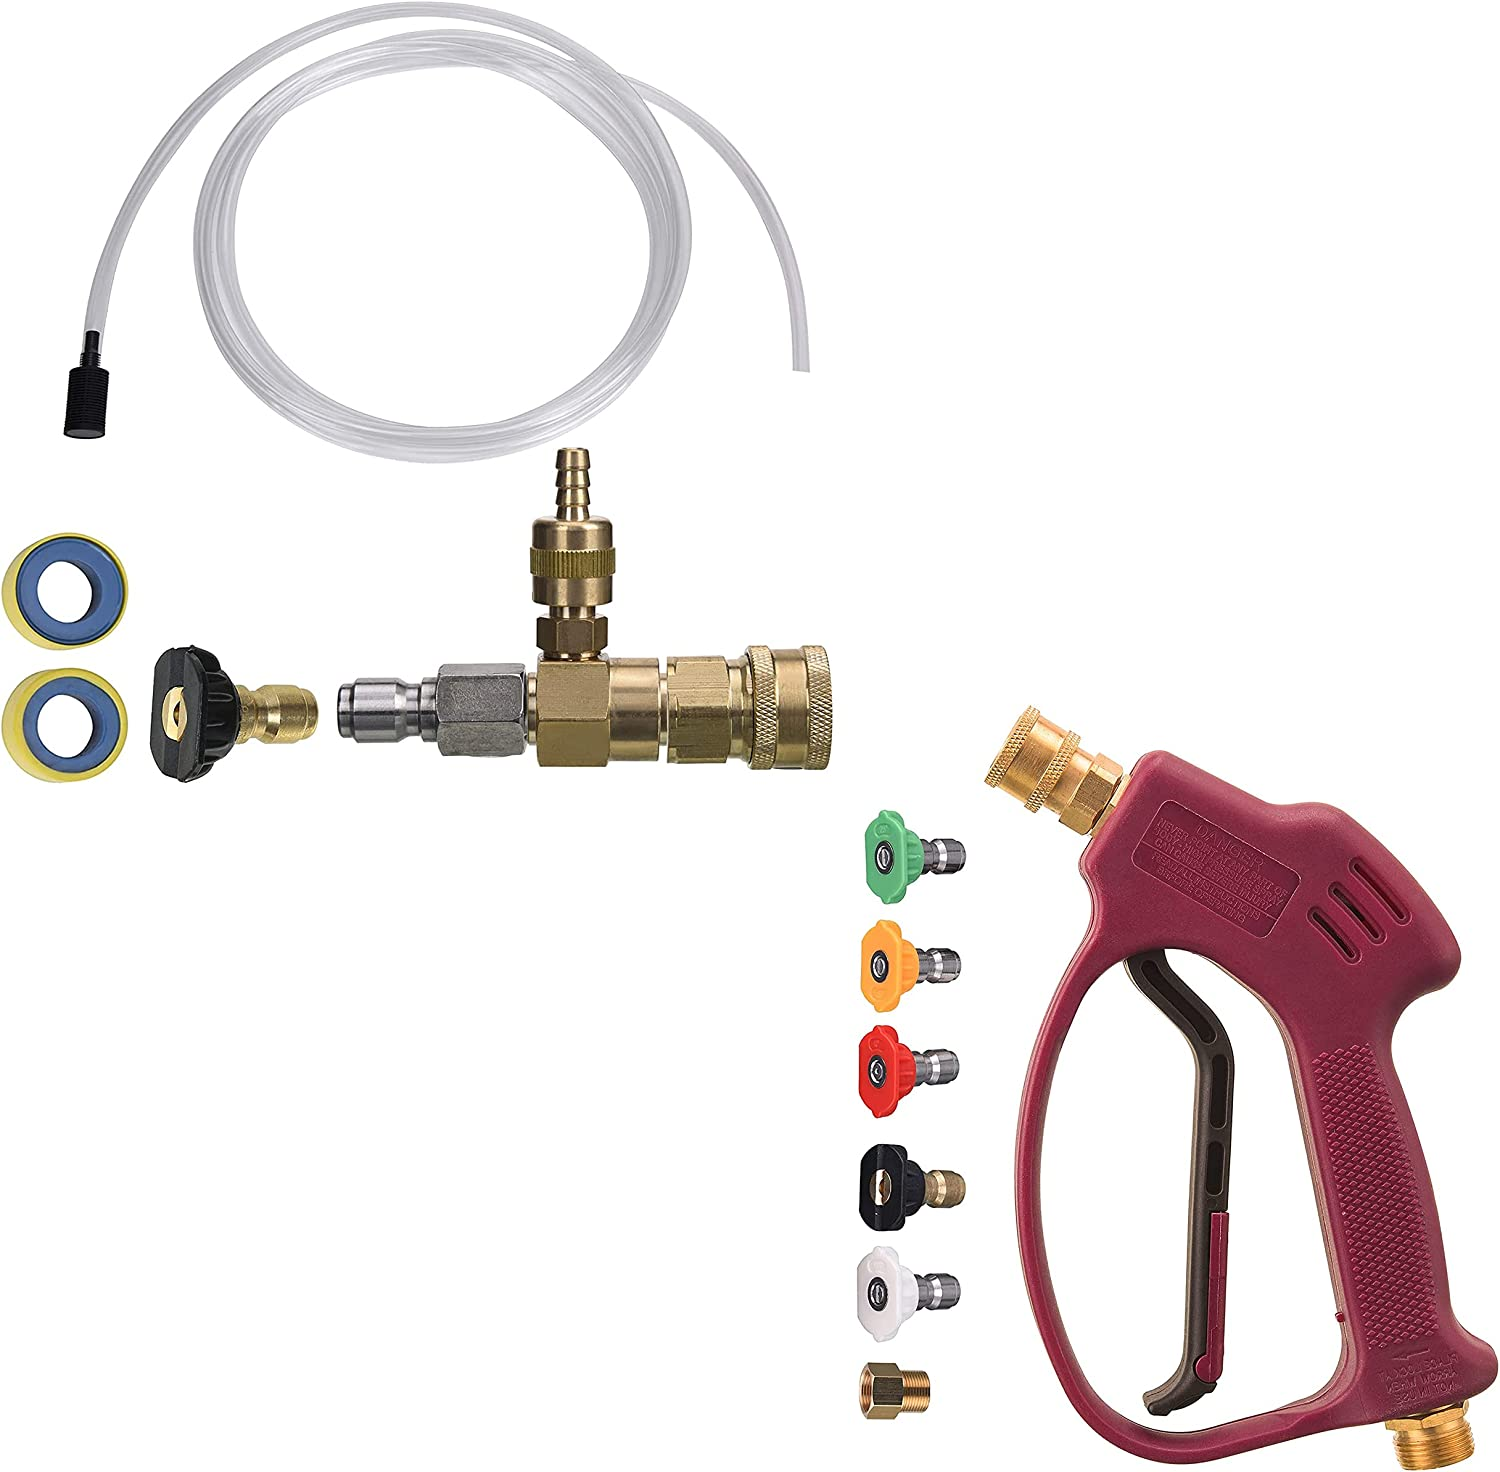 M MINGLE Adjustable Chemical Max 46% OFF Injector for shipfree Washer Pressure S Kit